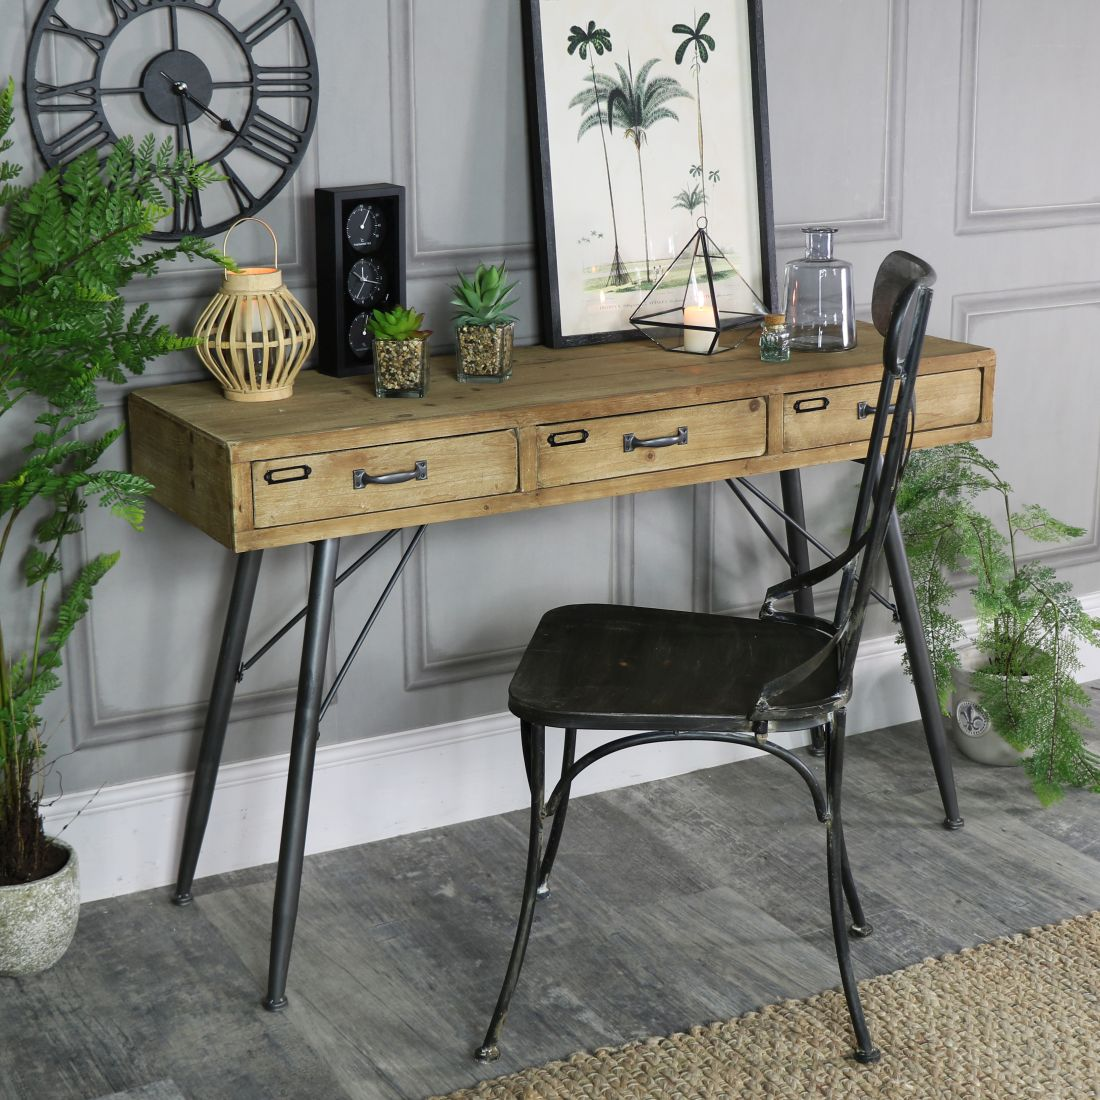 29melody-maison_large-rustic-industrial-three-drawer-desk.jpg